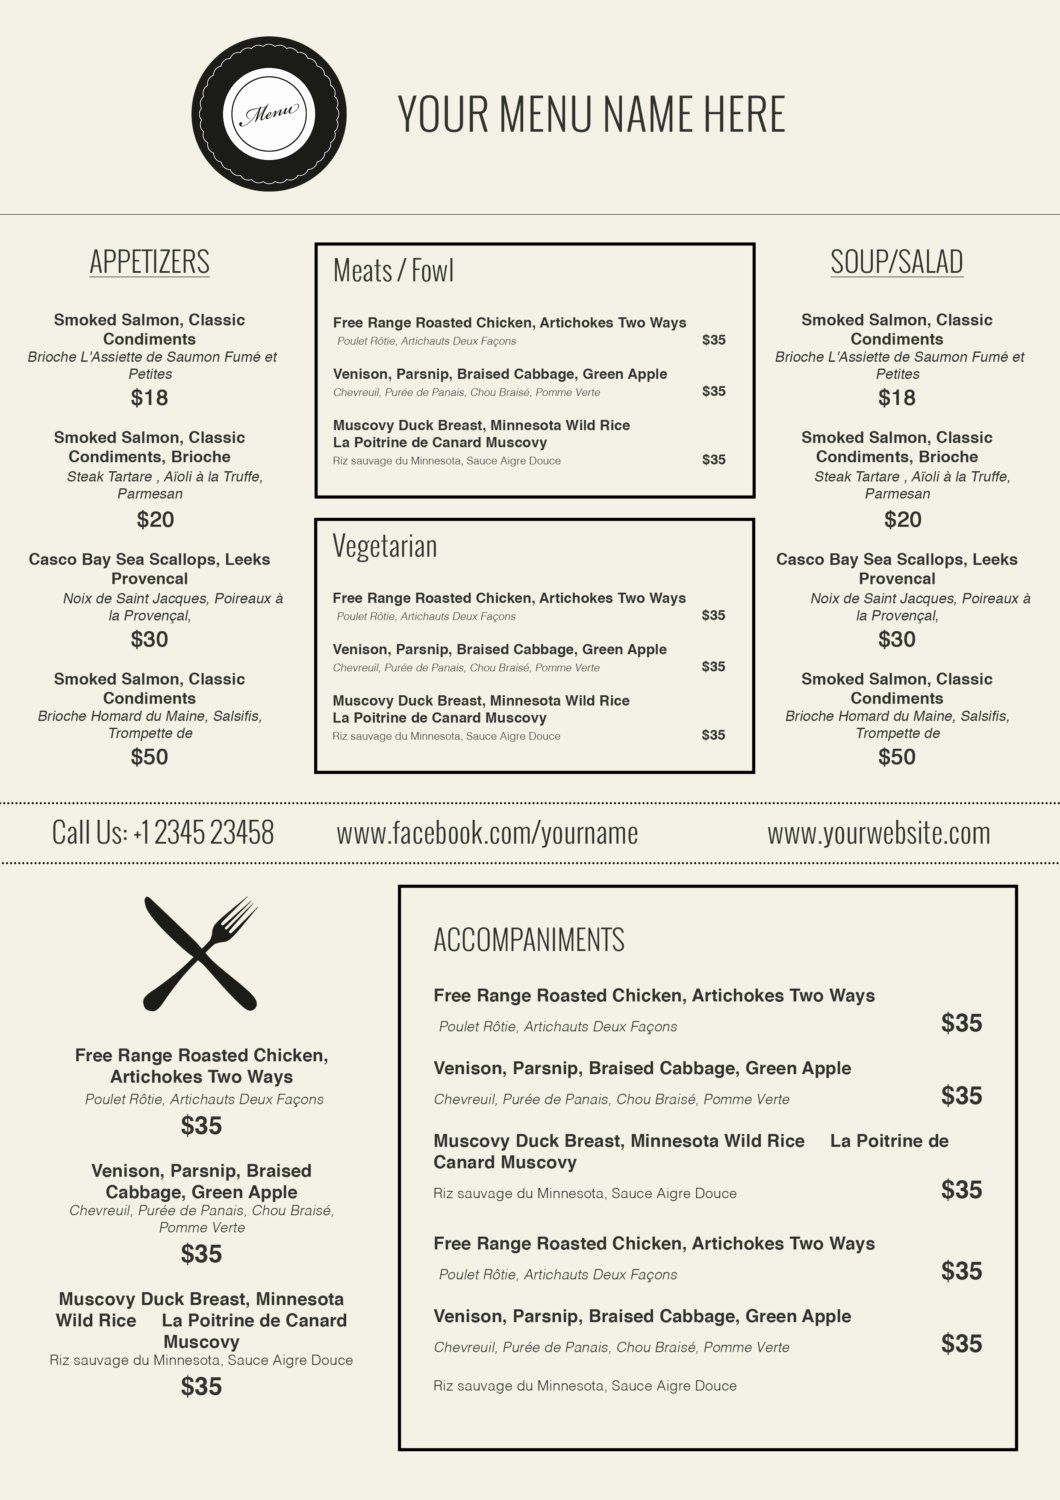 Free Cafe Menu Templates For Word Atlantaauctionco Throughout Free Cafe Menu Templates For Word Restaurant Menu Template Menu Restaurant Food Menu Template